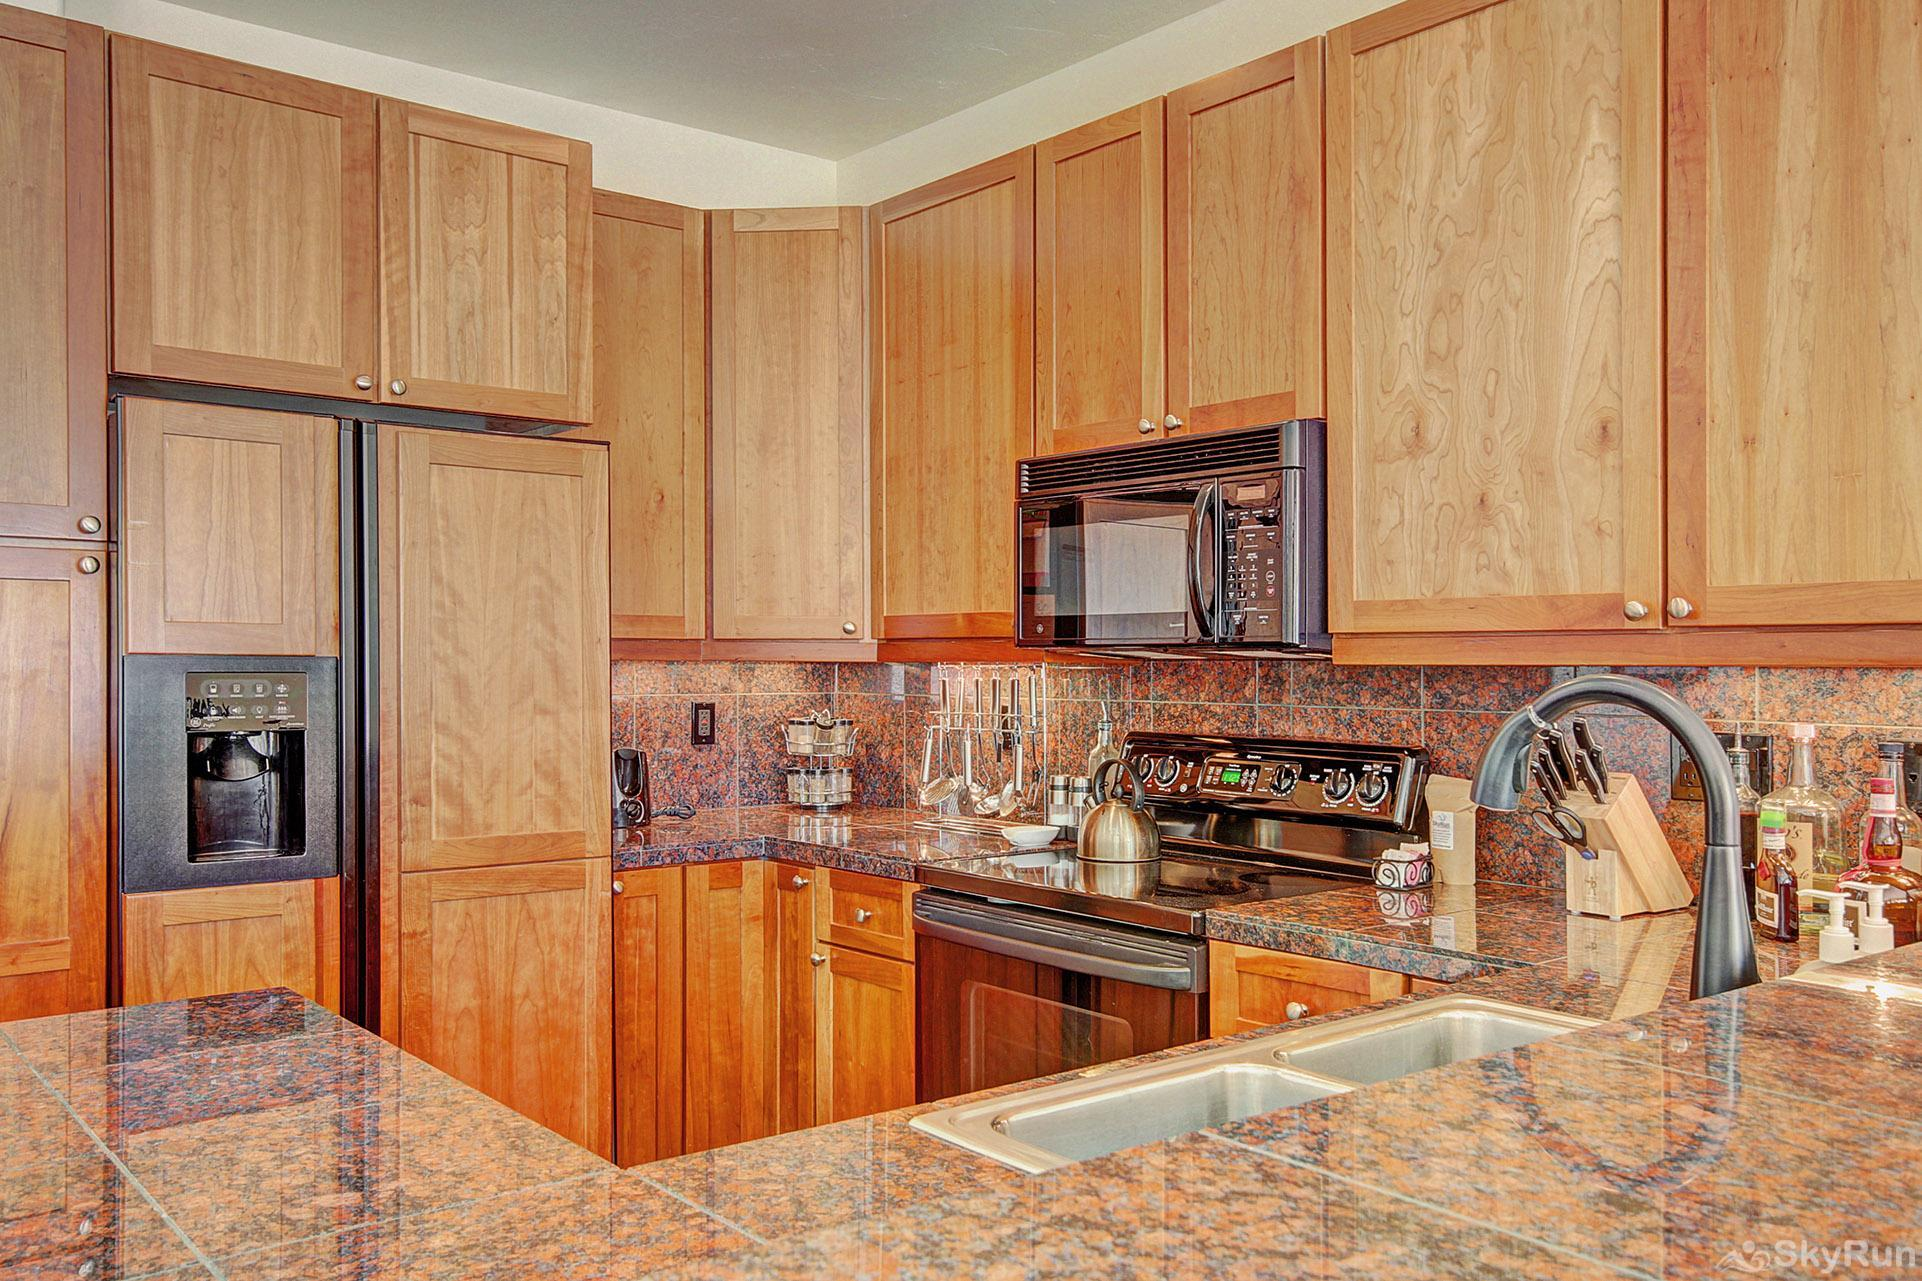 Highland Greens Pine Enjoy tasty home-cooked meals from the comforts of a fully equipped kitchen